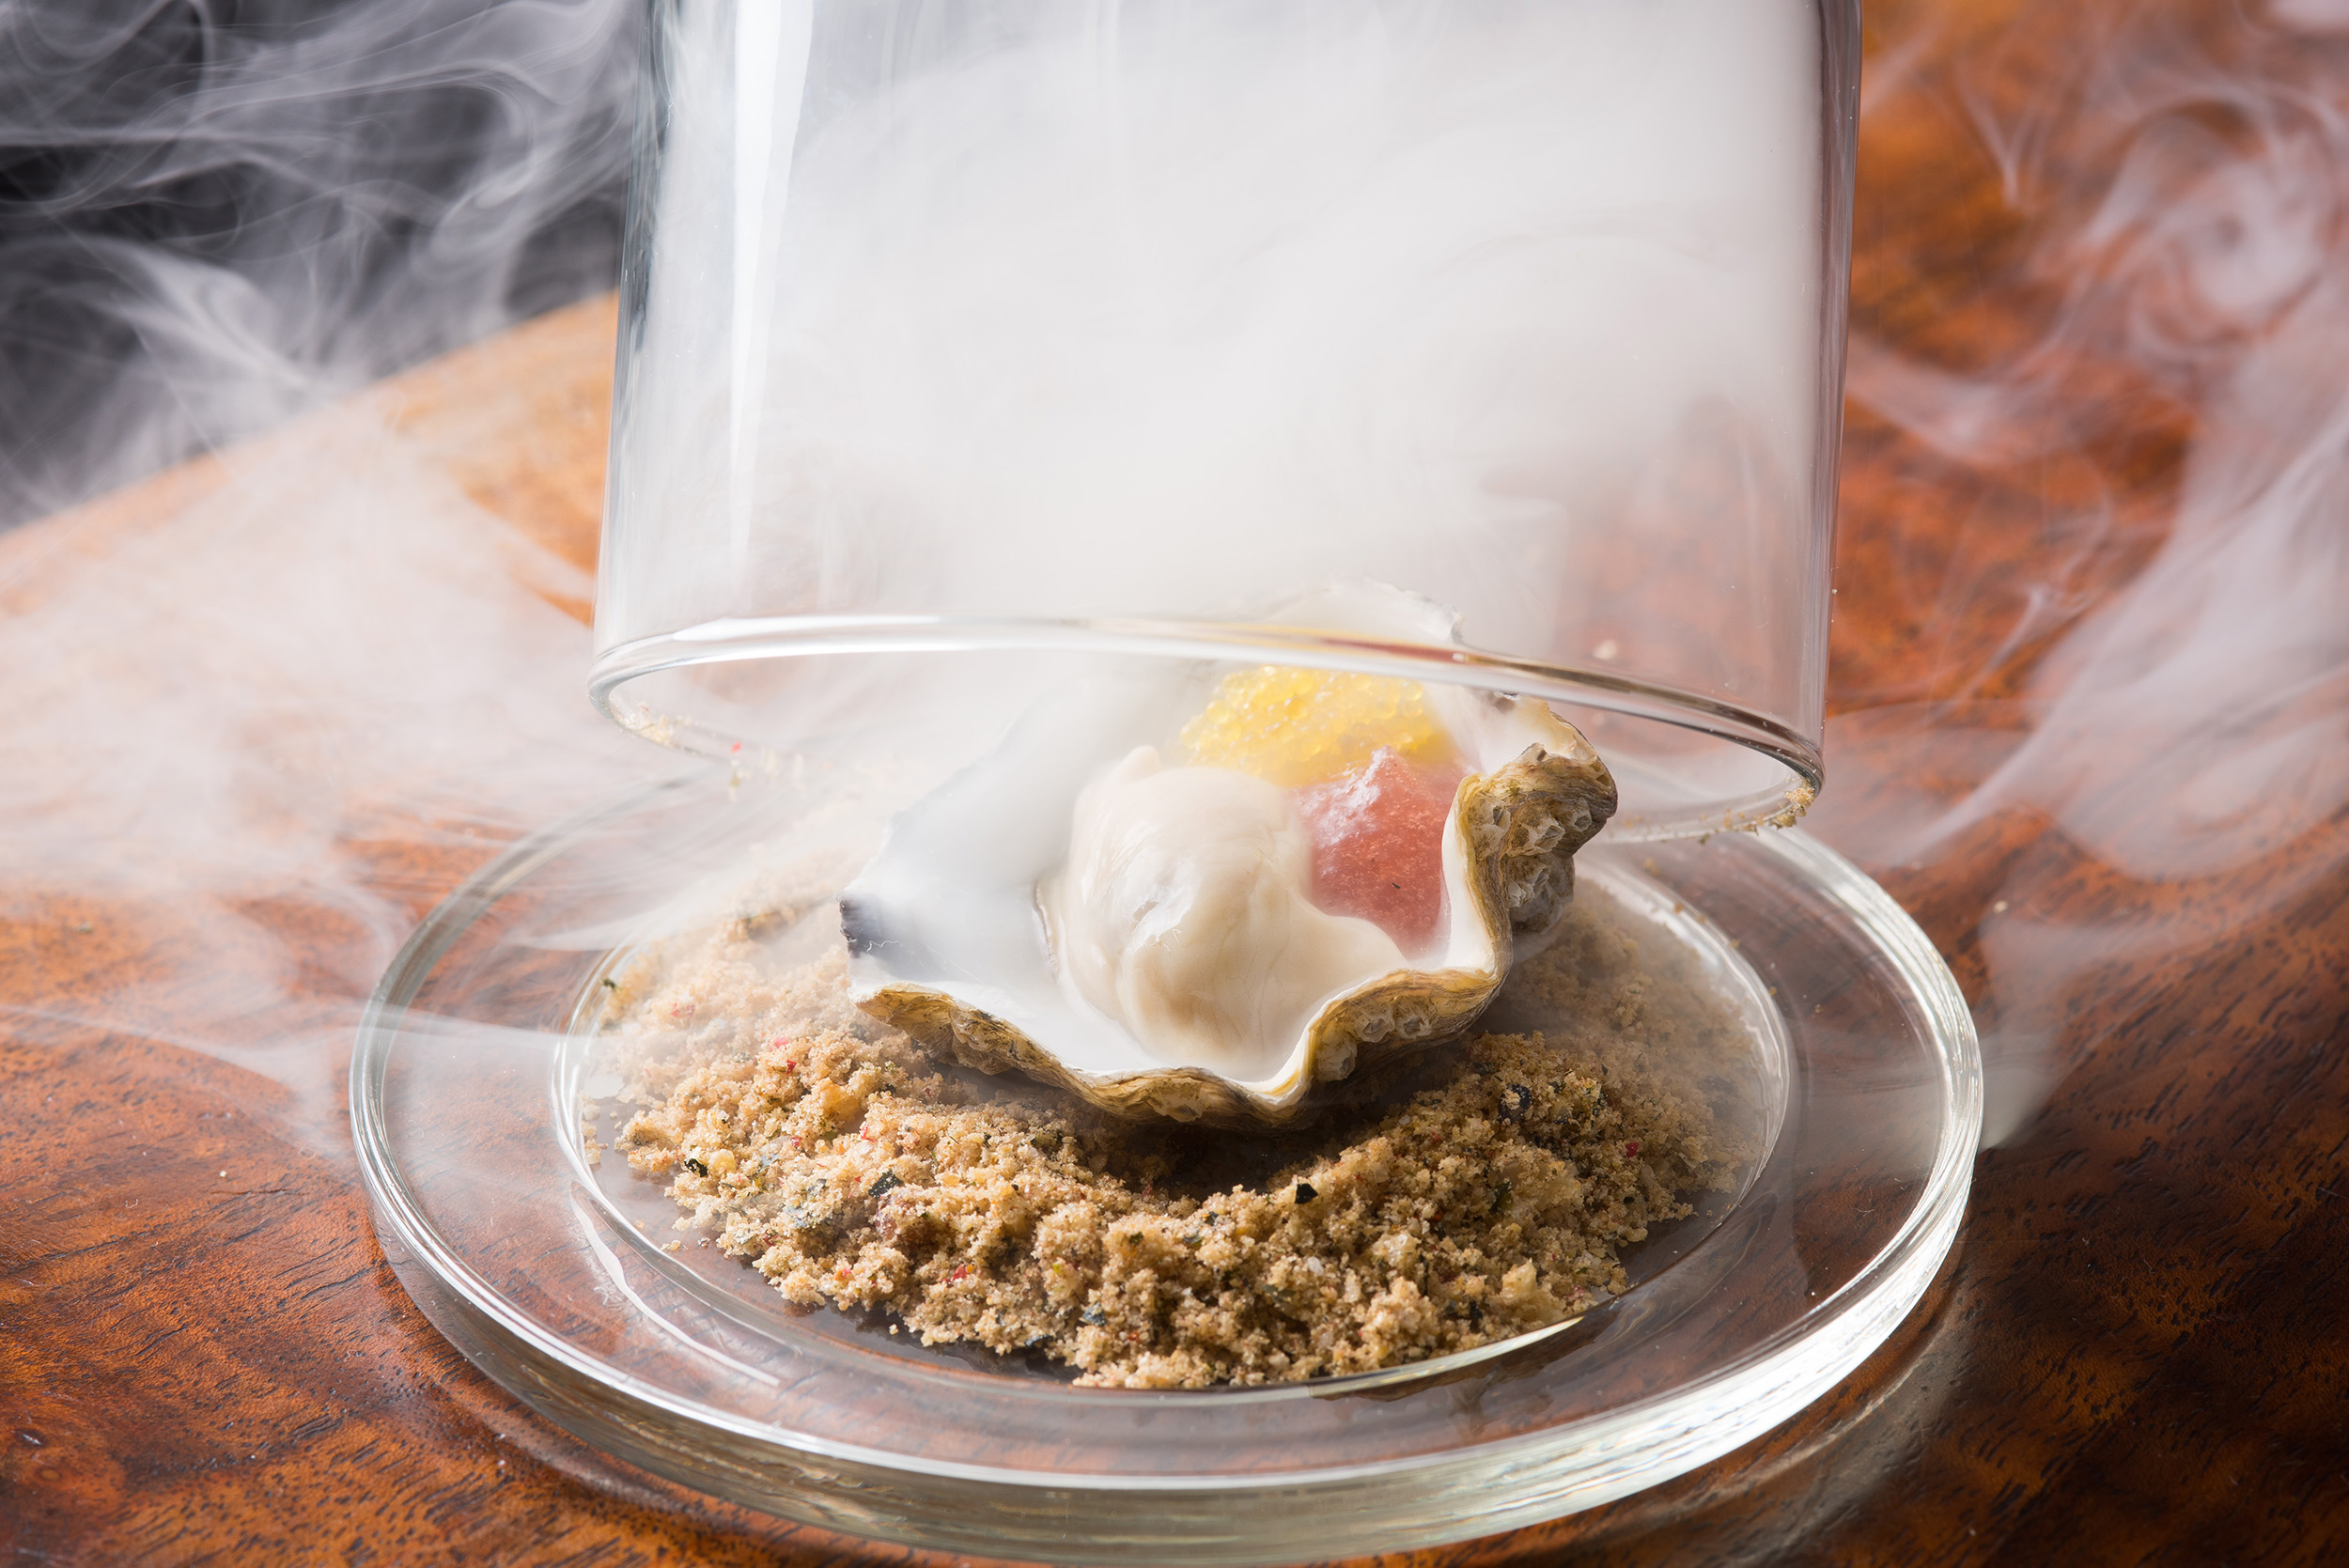 Incredible-Food-Photography-Smoked-Oyster